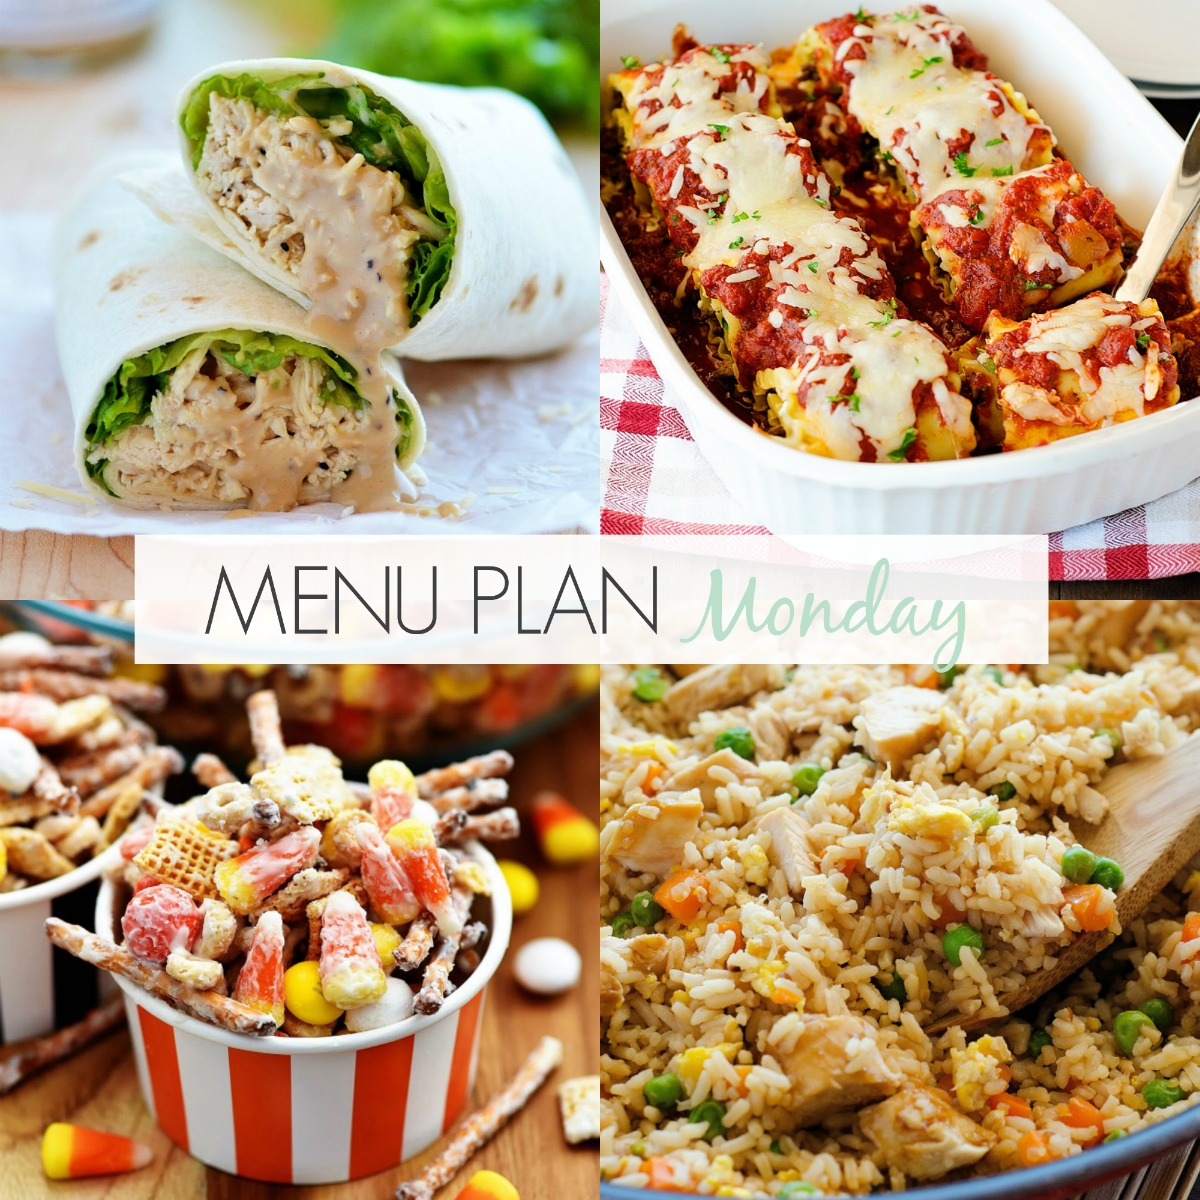 Menu Plan Monday #164 at Life in the Lofthouse.com